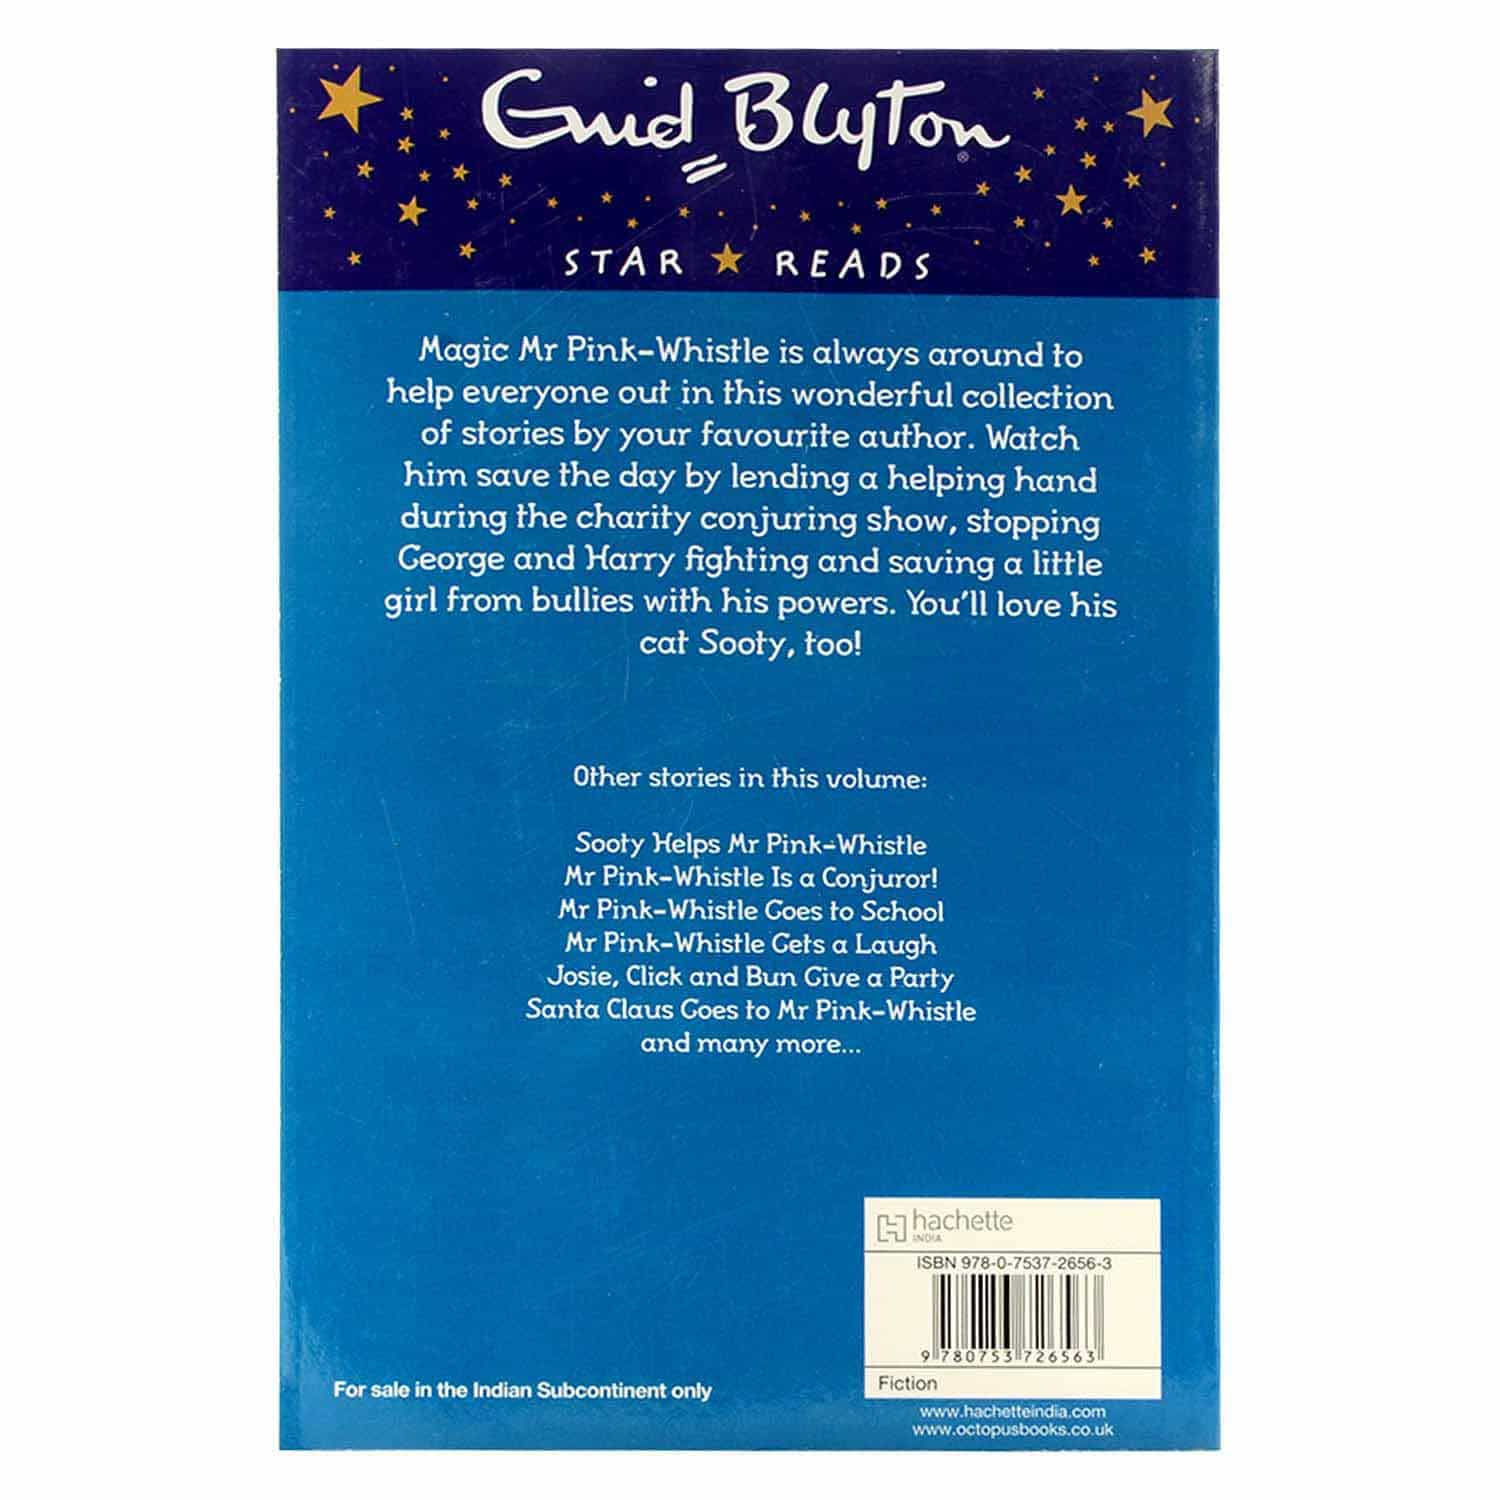 Enid Blyton - Mr. Pink-Whistle Stories and Other Stories